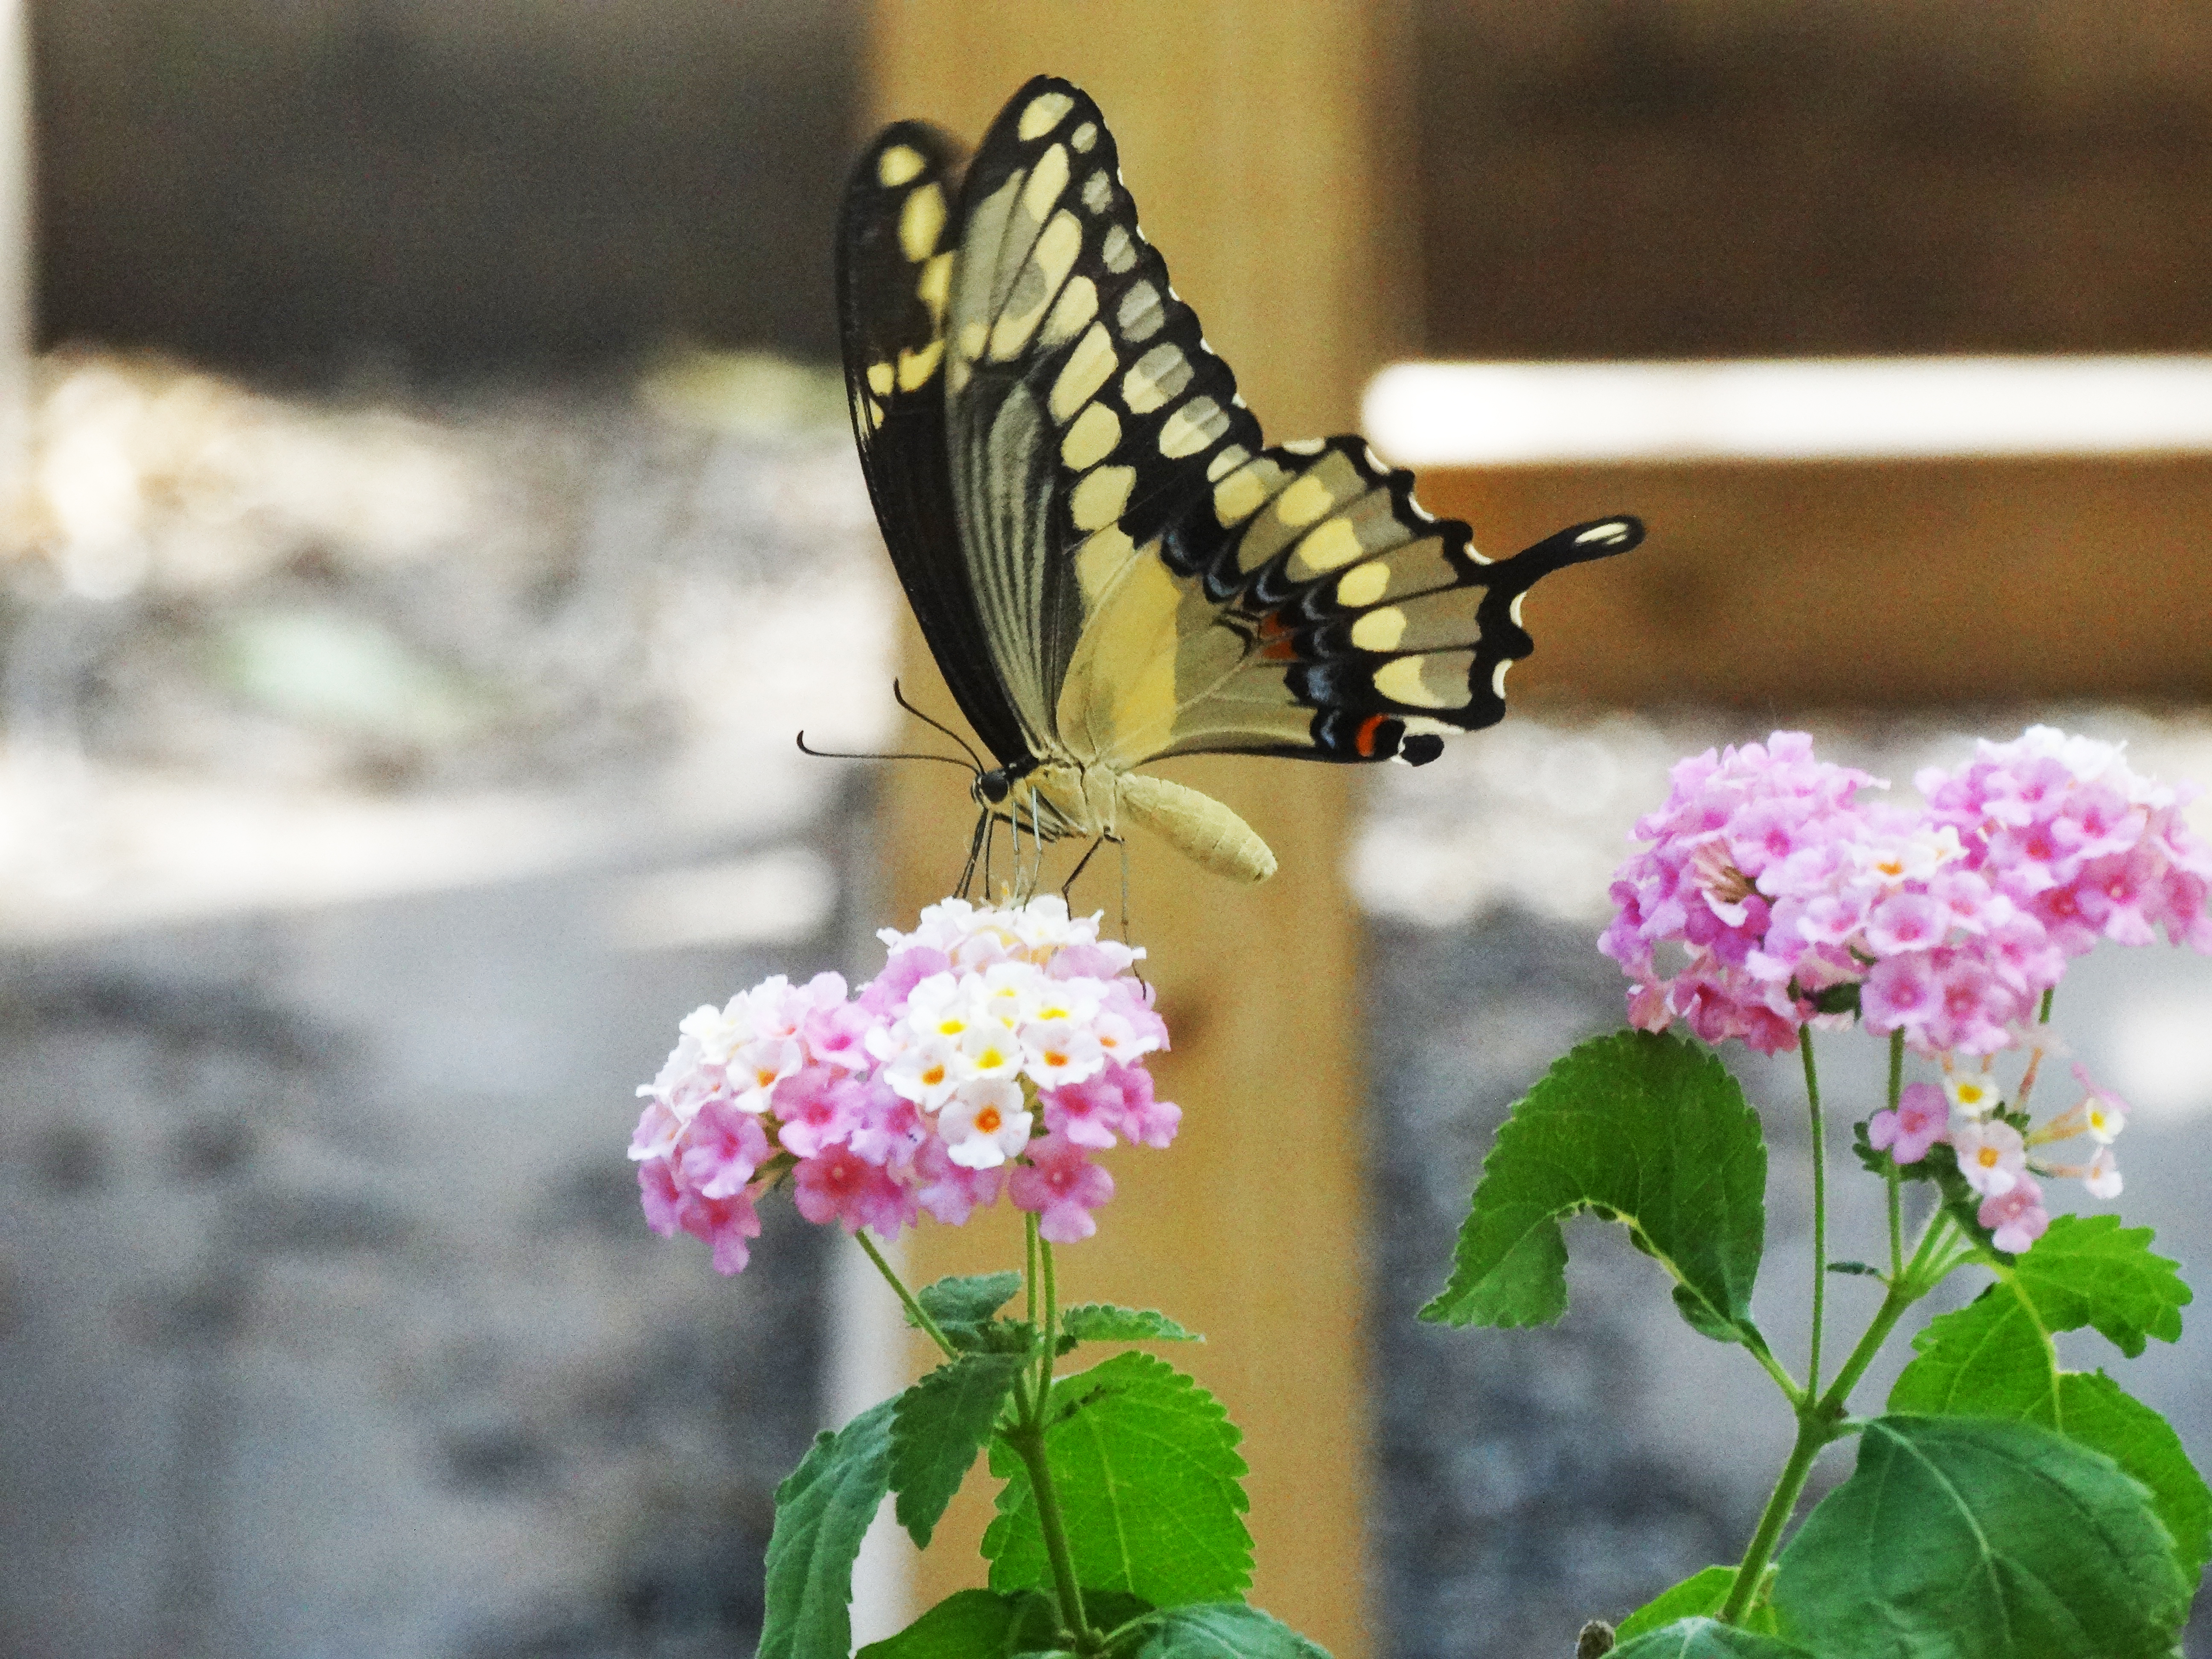 Divine Inspiration Photo #5A - Giant Swallowtail - 8 x 10